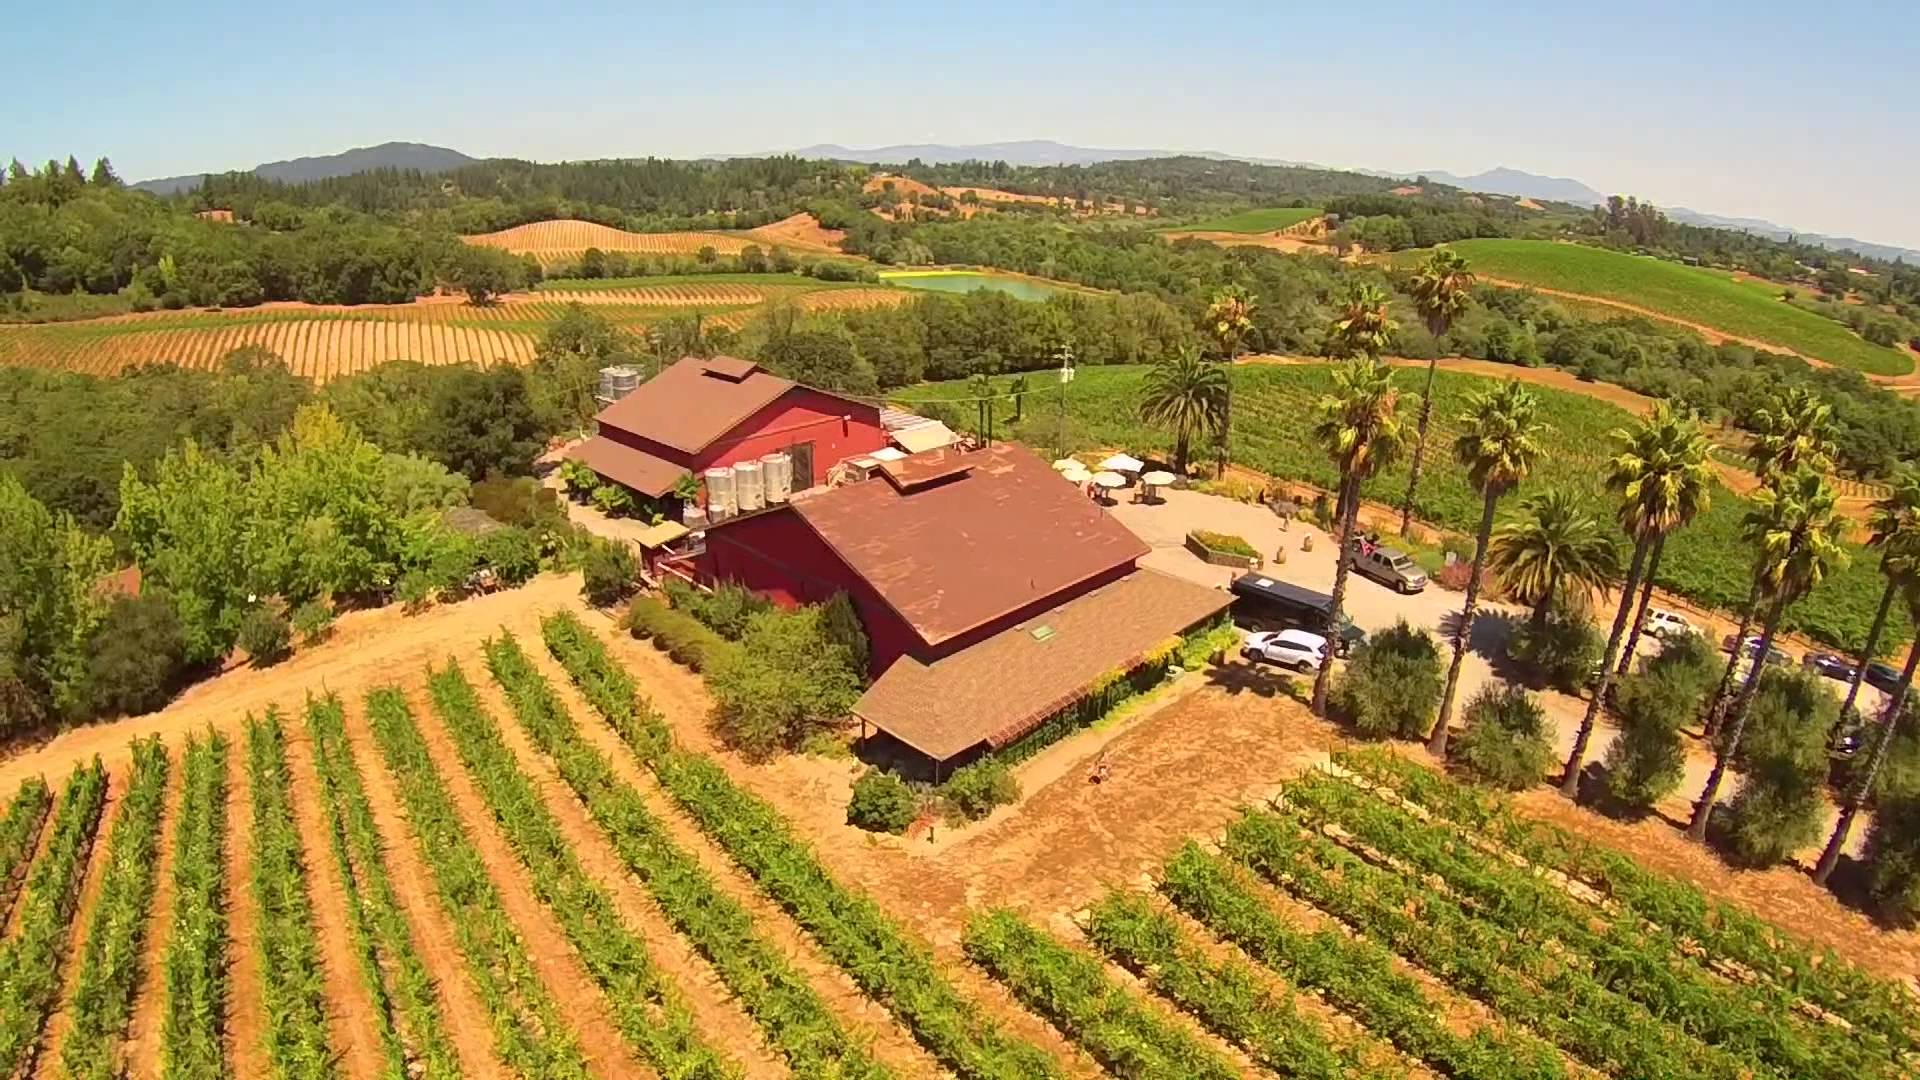 Iron Horse is one of the most gorgeous properties in Sonoma. Their new release sparkling wines were simply outstanding.